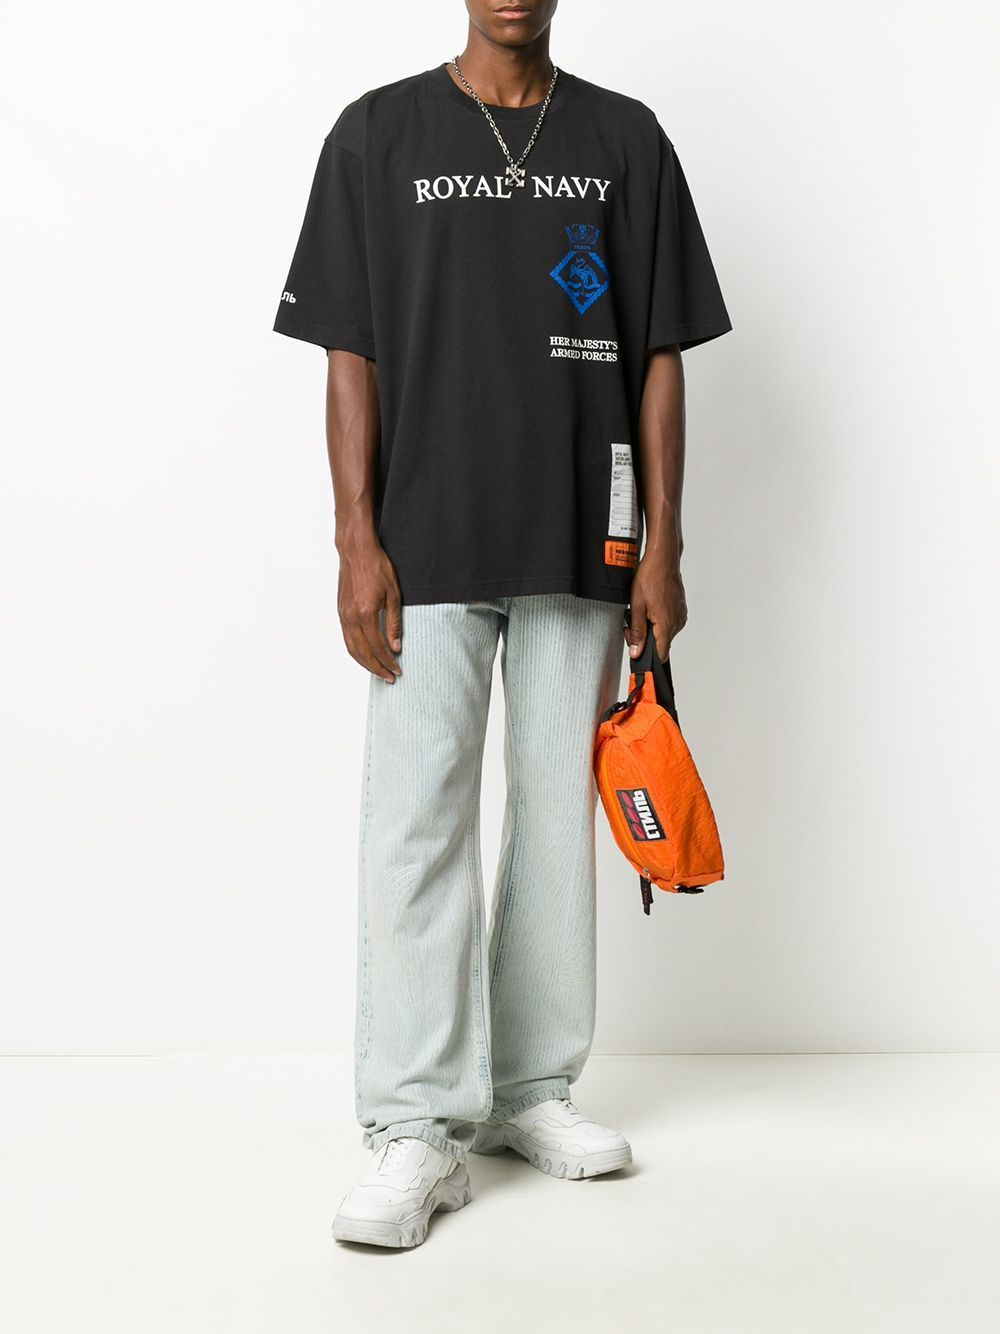 HERON PRESTON Royal Navy Print T-shirt Black